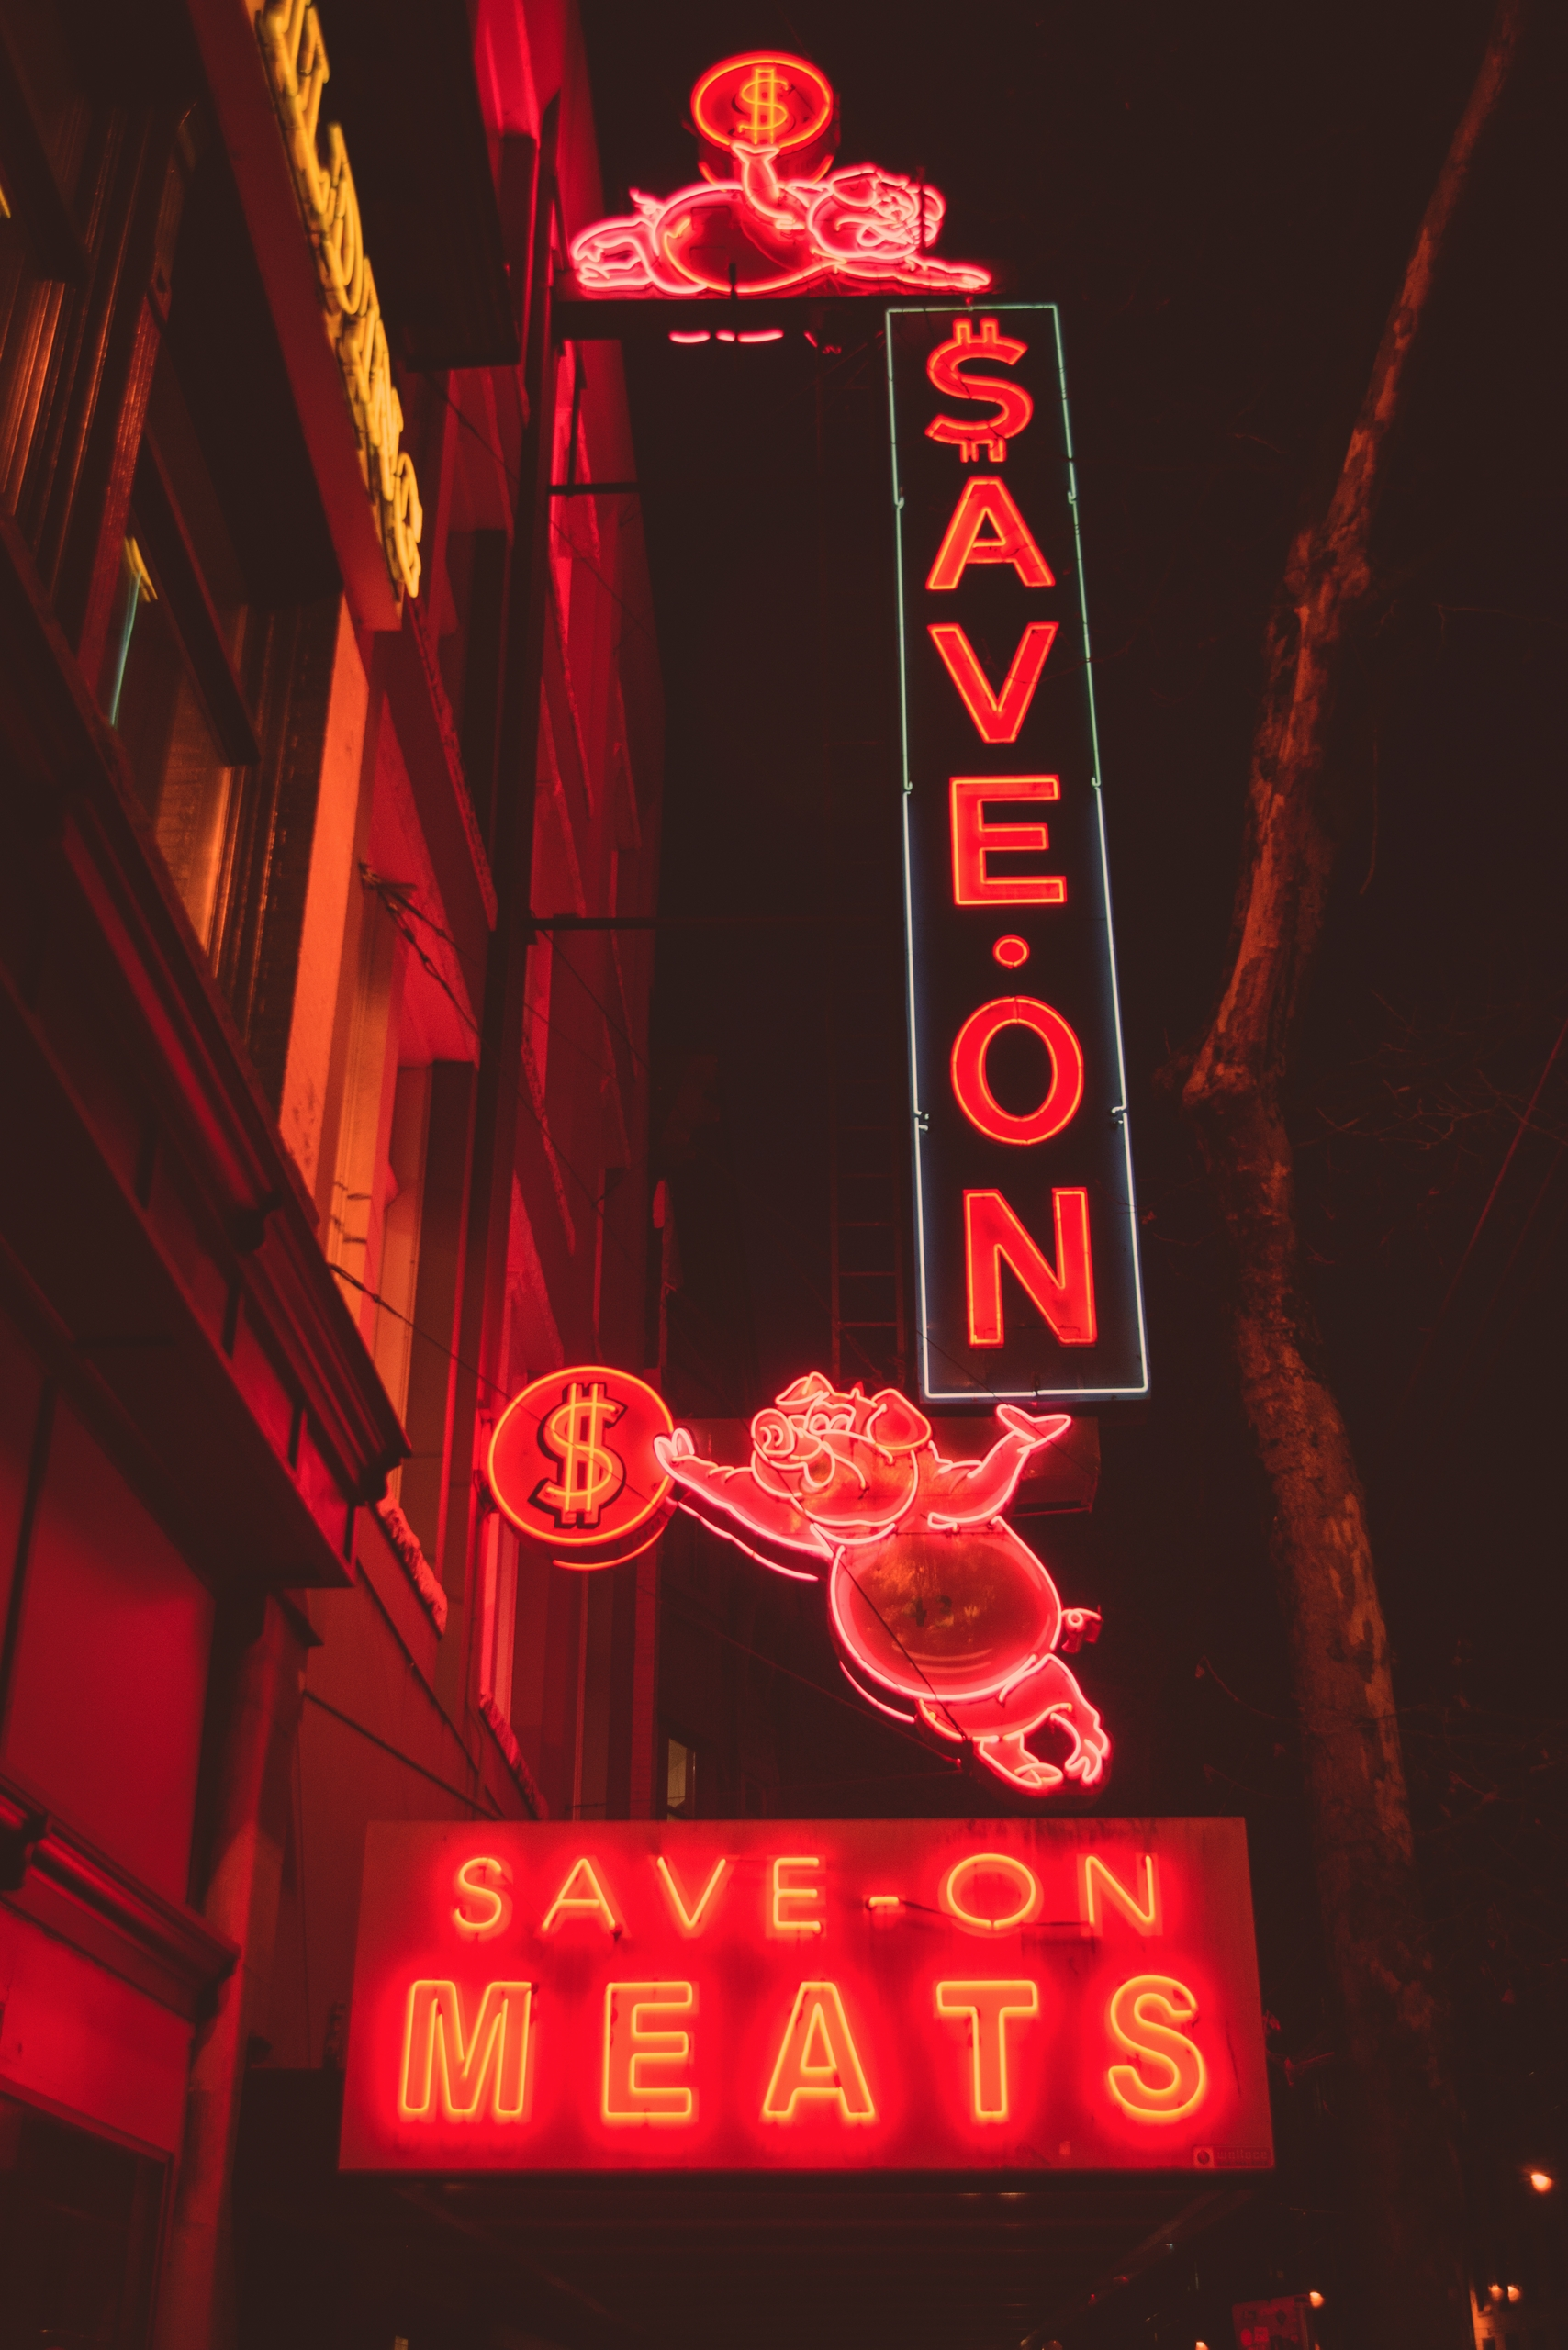 Save-On - This sign pigs sold c - rhinocerous | ello